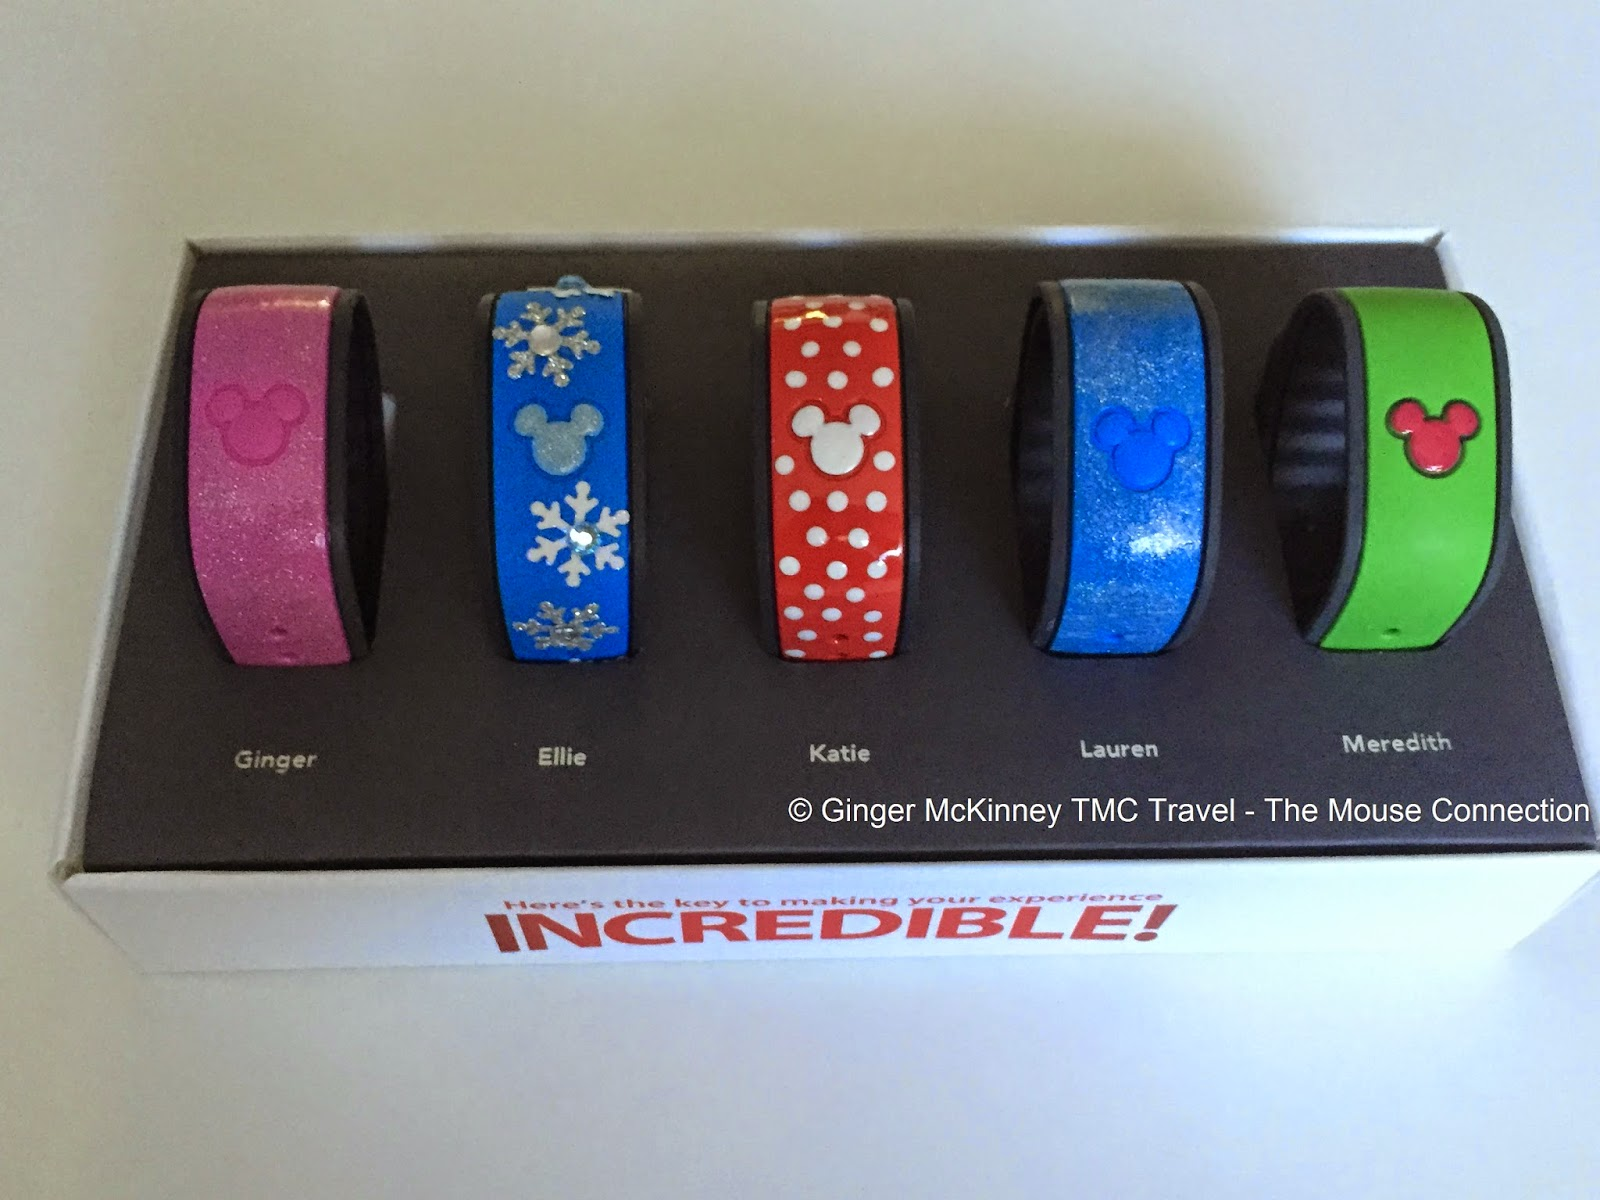 The Mouse Connection: Magic Band Decorating 101